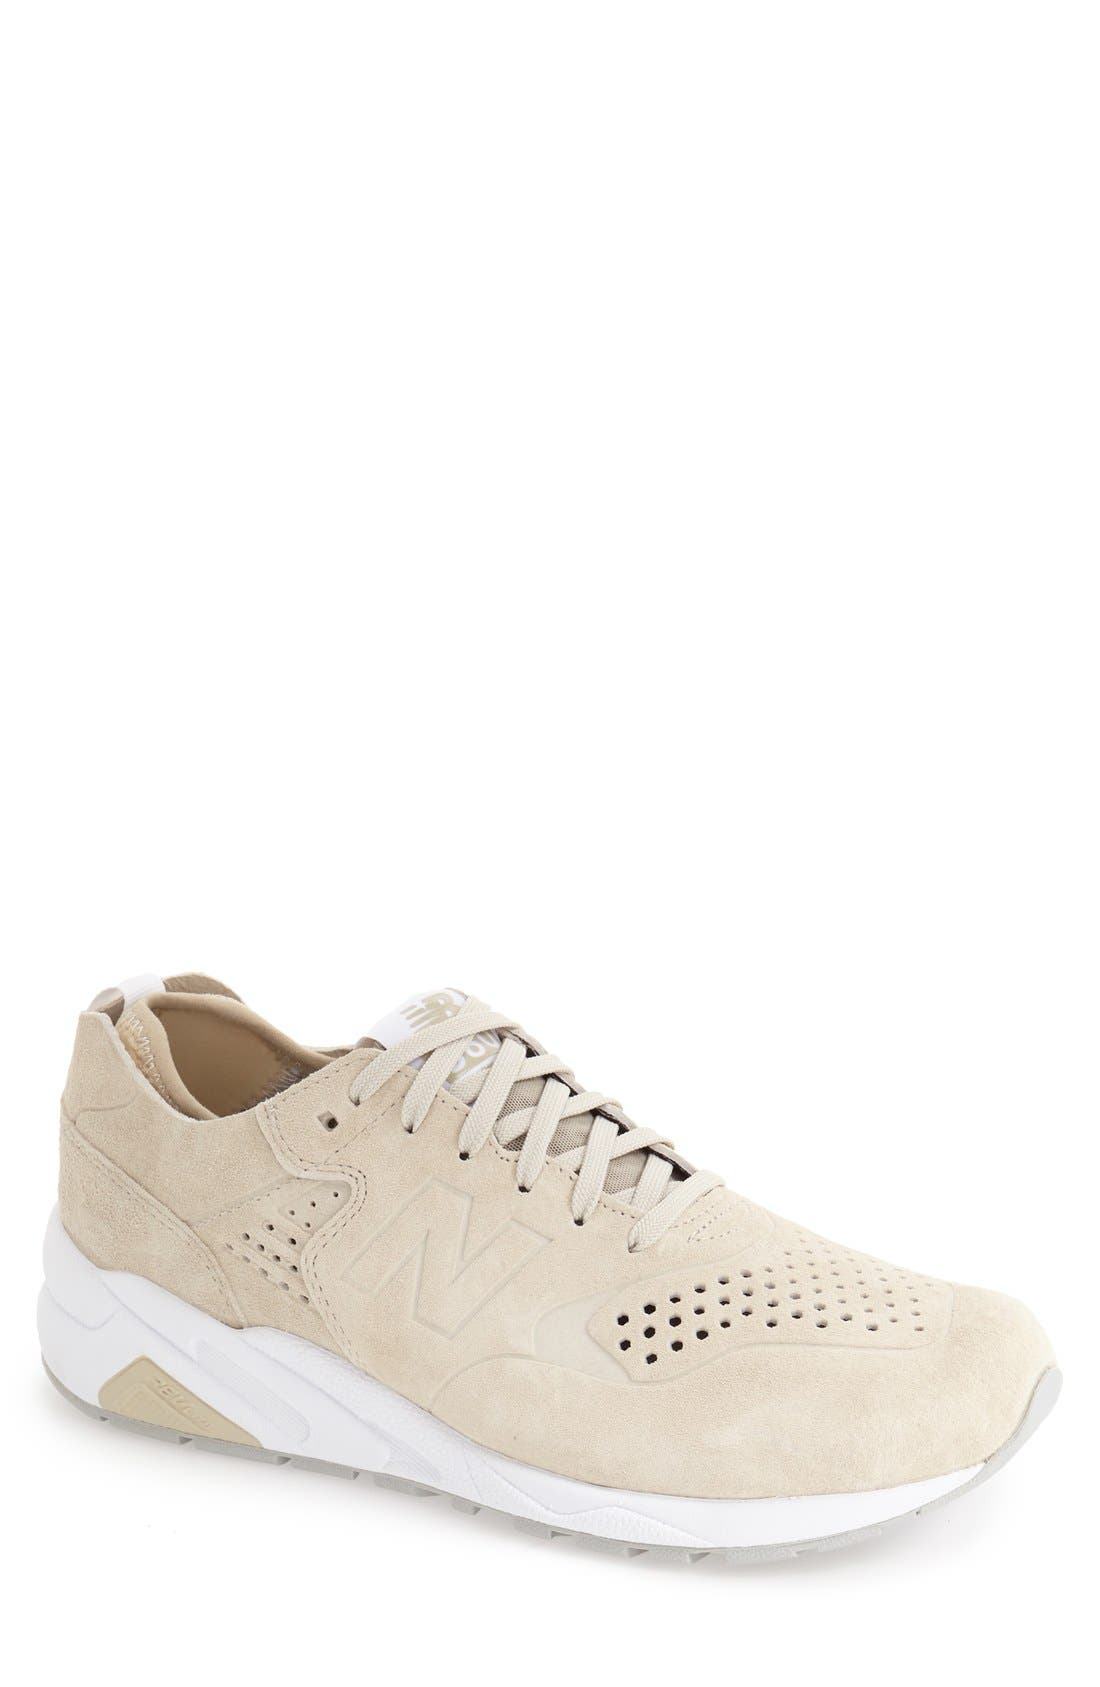 NEW BALANCE '580 Re-Engineered' Sneaker, Main, color, 268